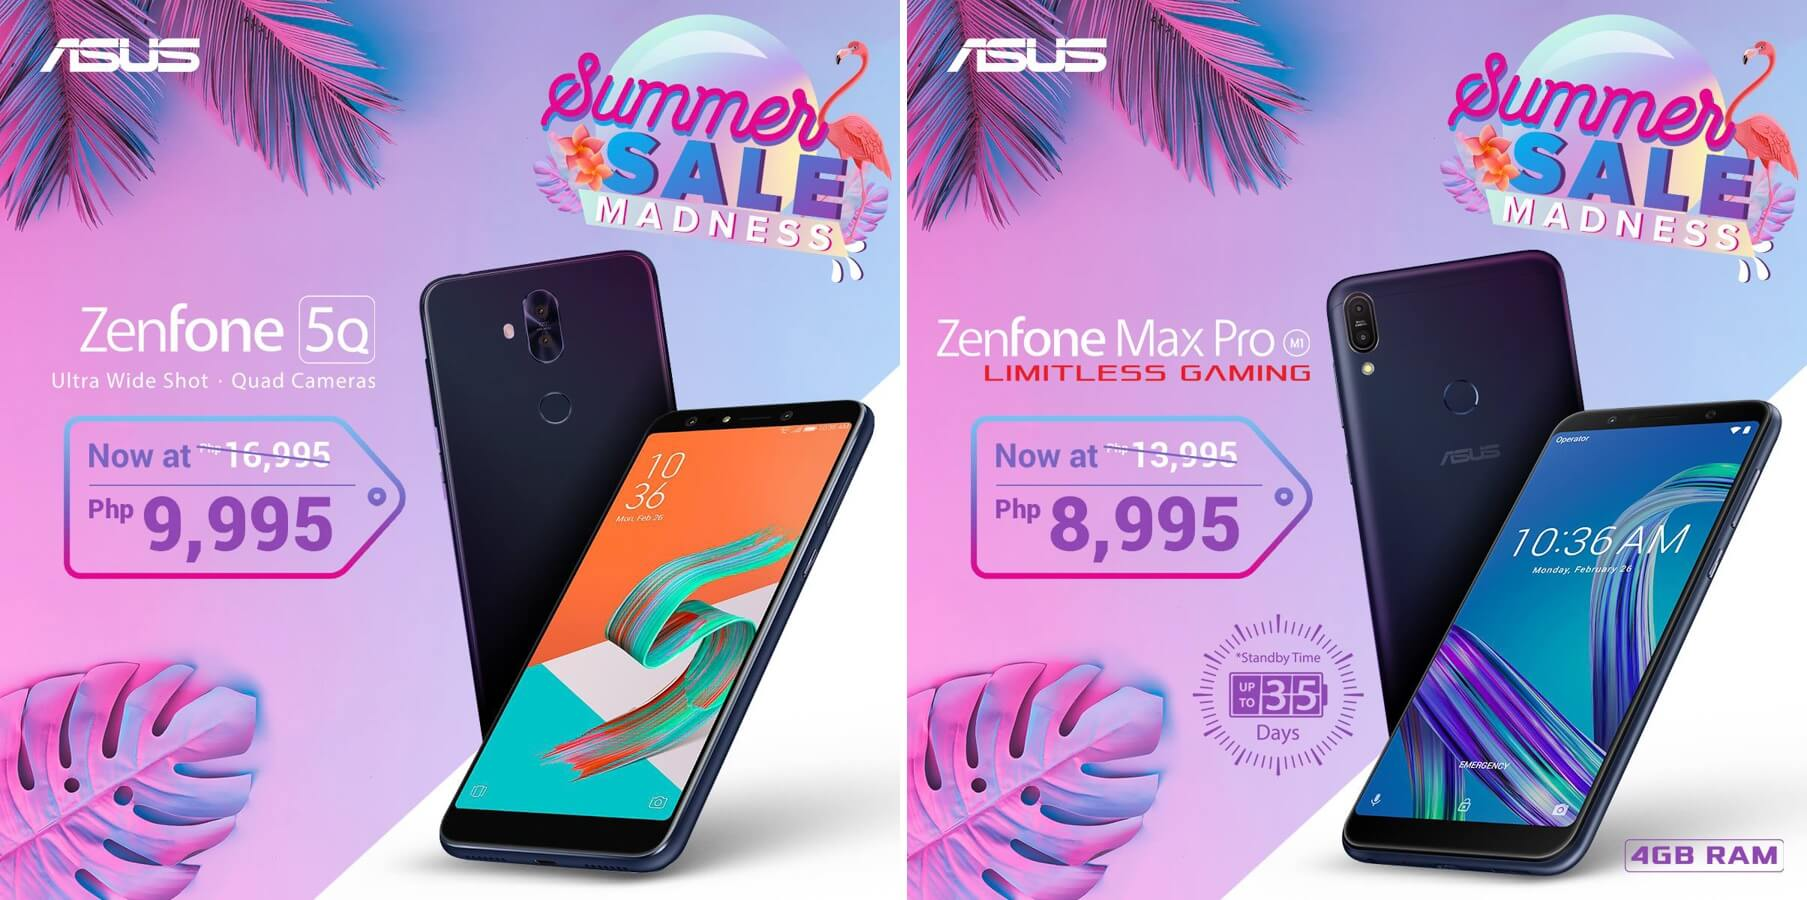 ASUS-Summer-Sale-Zenfone-Philippines